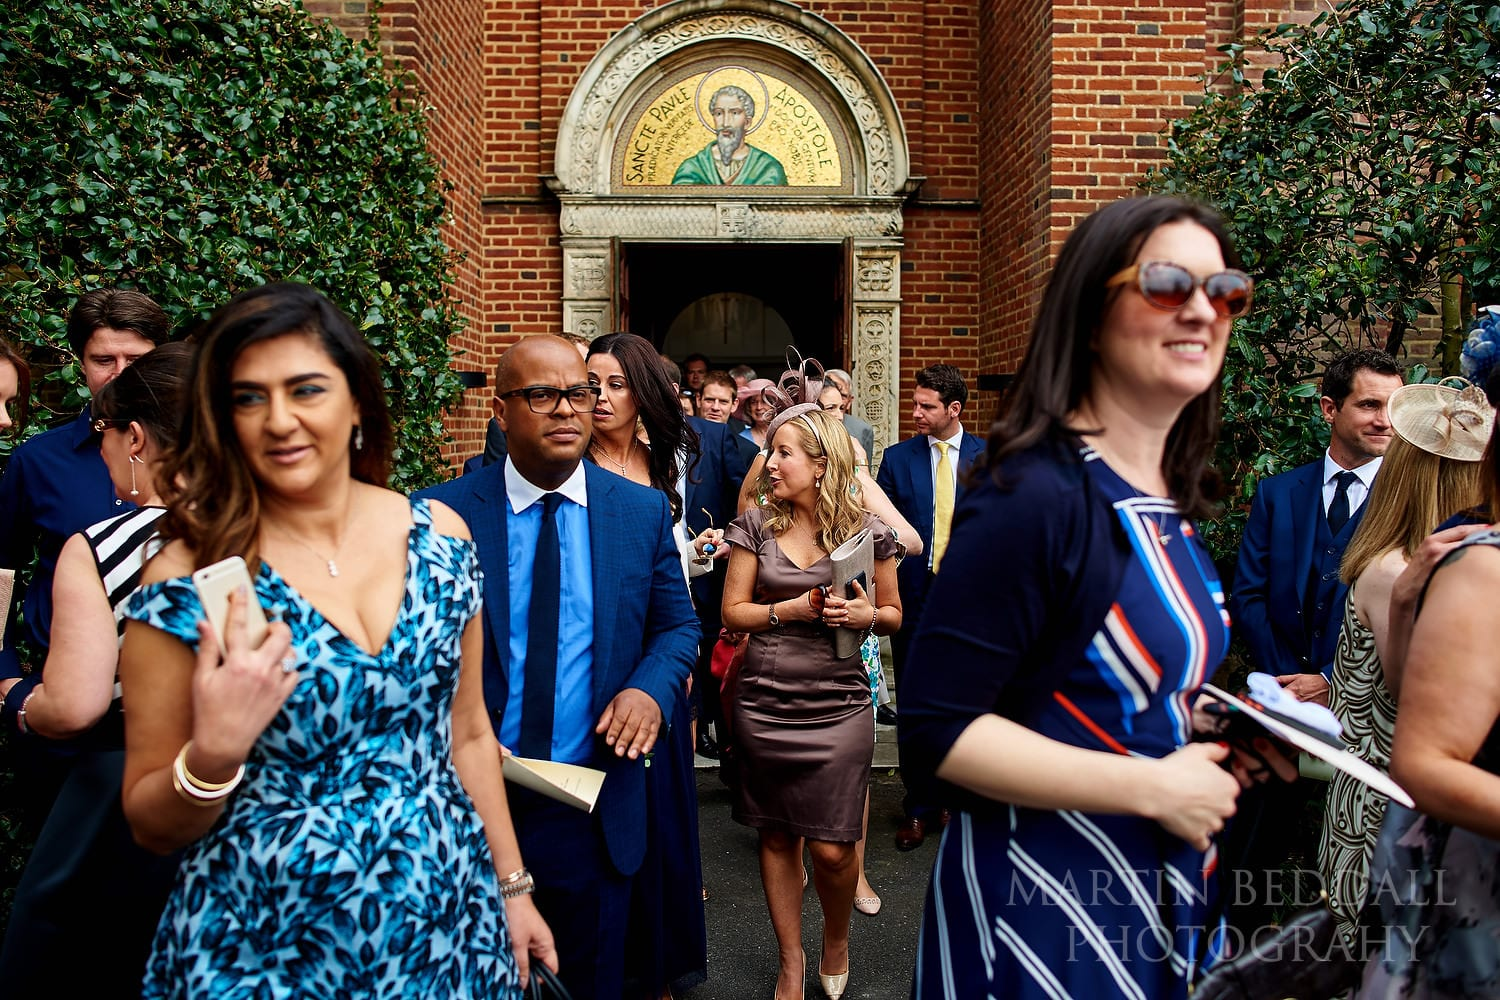 Guests leave the church